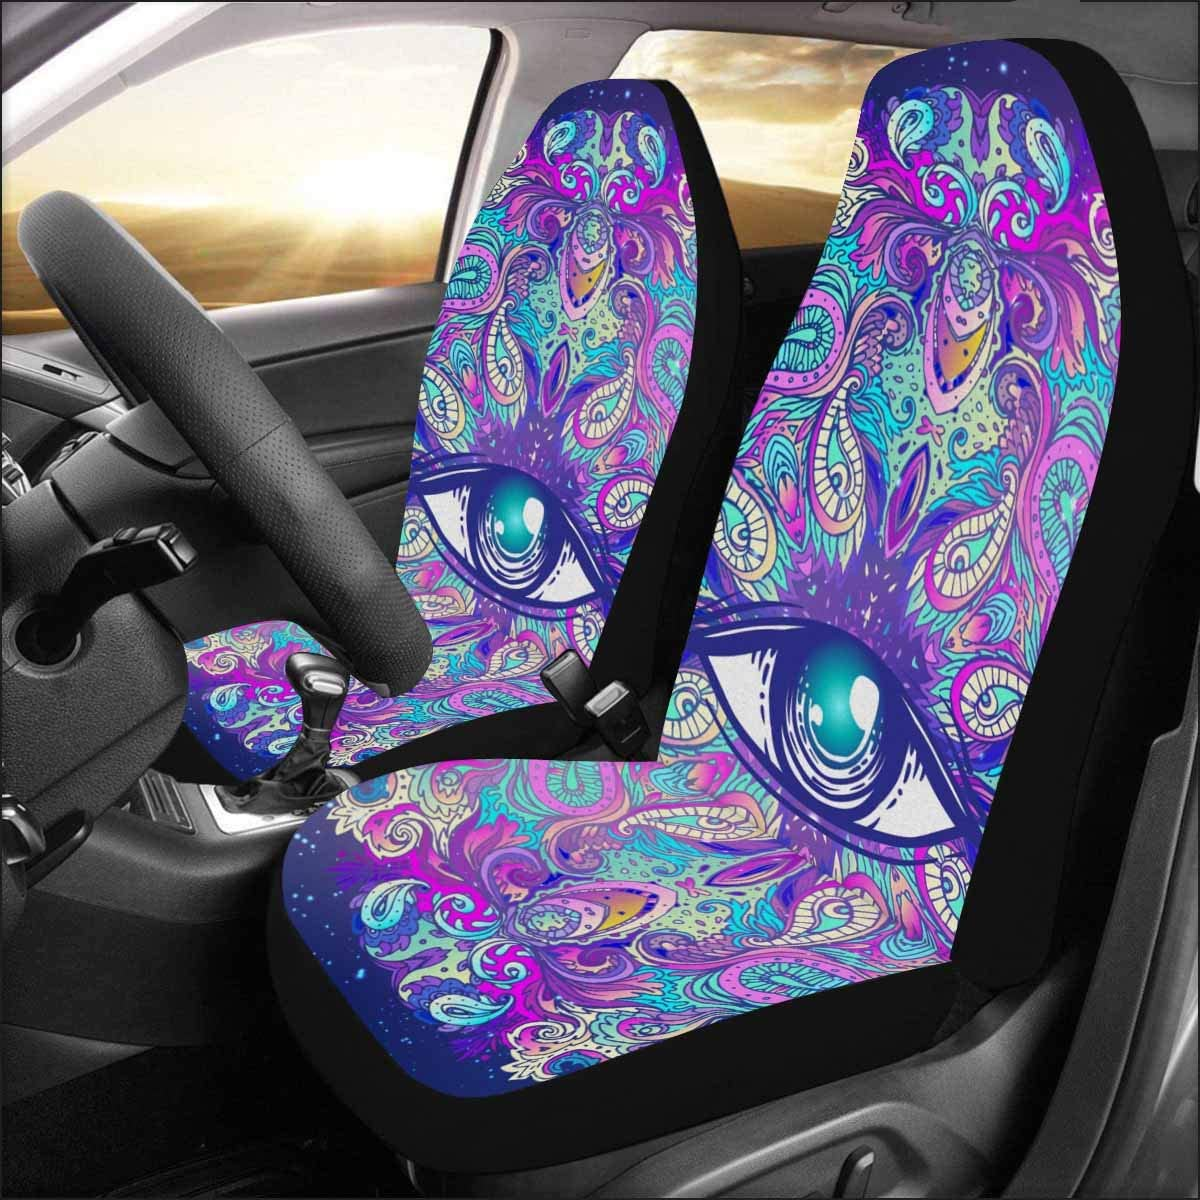 INTERESTPRINT Mandalas Front Seat Covers 2 pc, Entire Seat Protection, Car Front Seat Cushion for Pets Running Gym